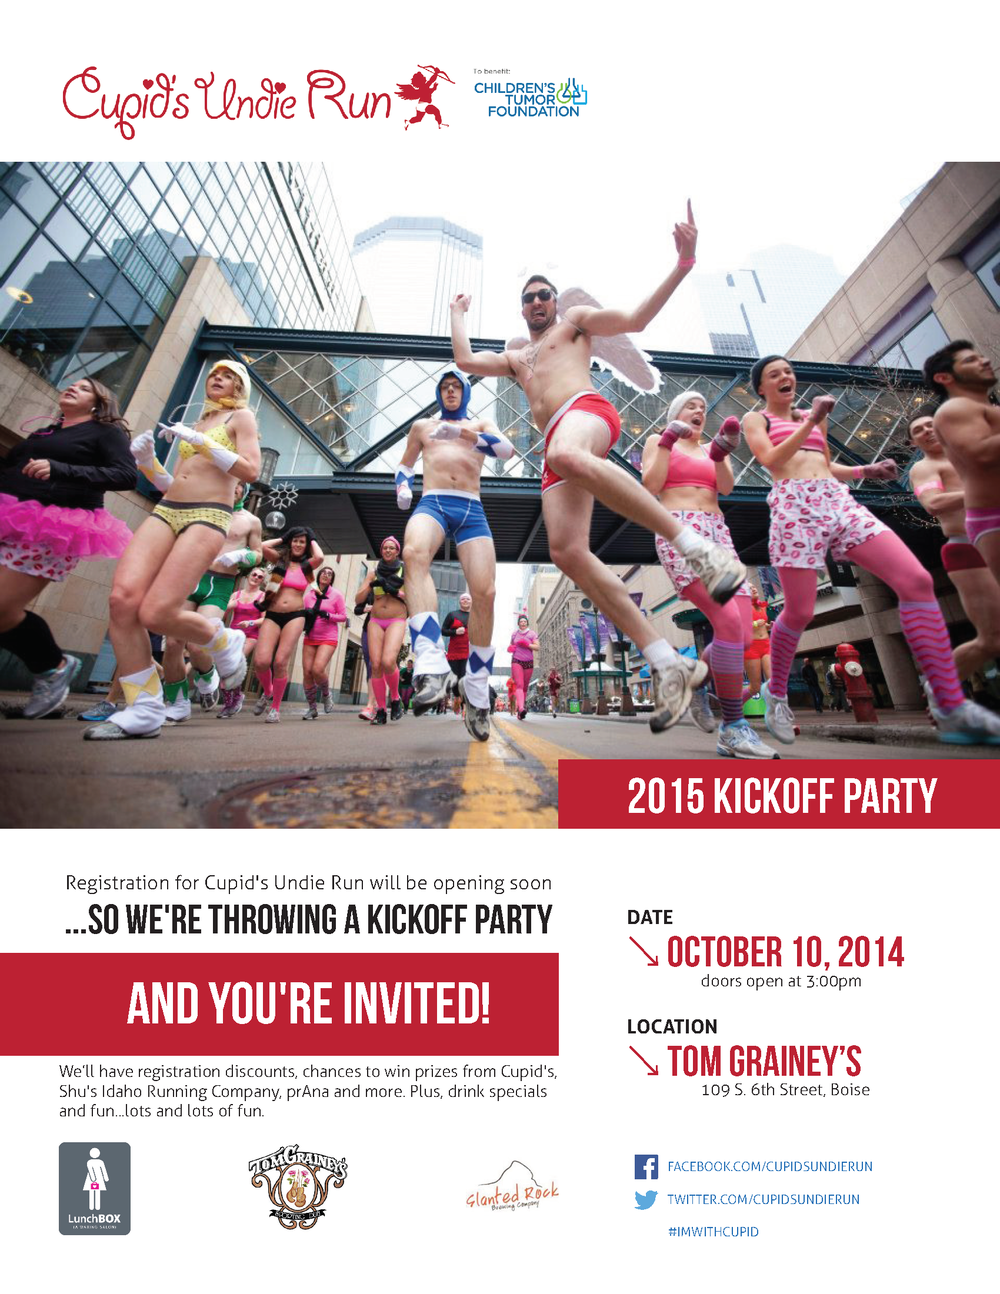 Cupid's Undie Run - Kickoff Flyer